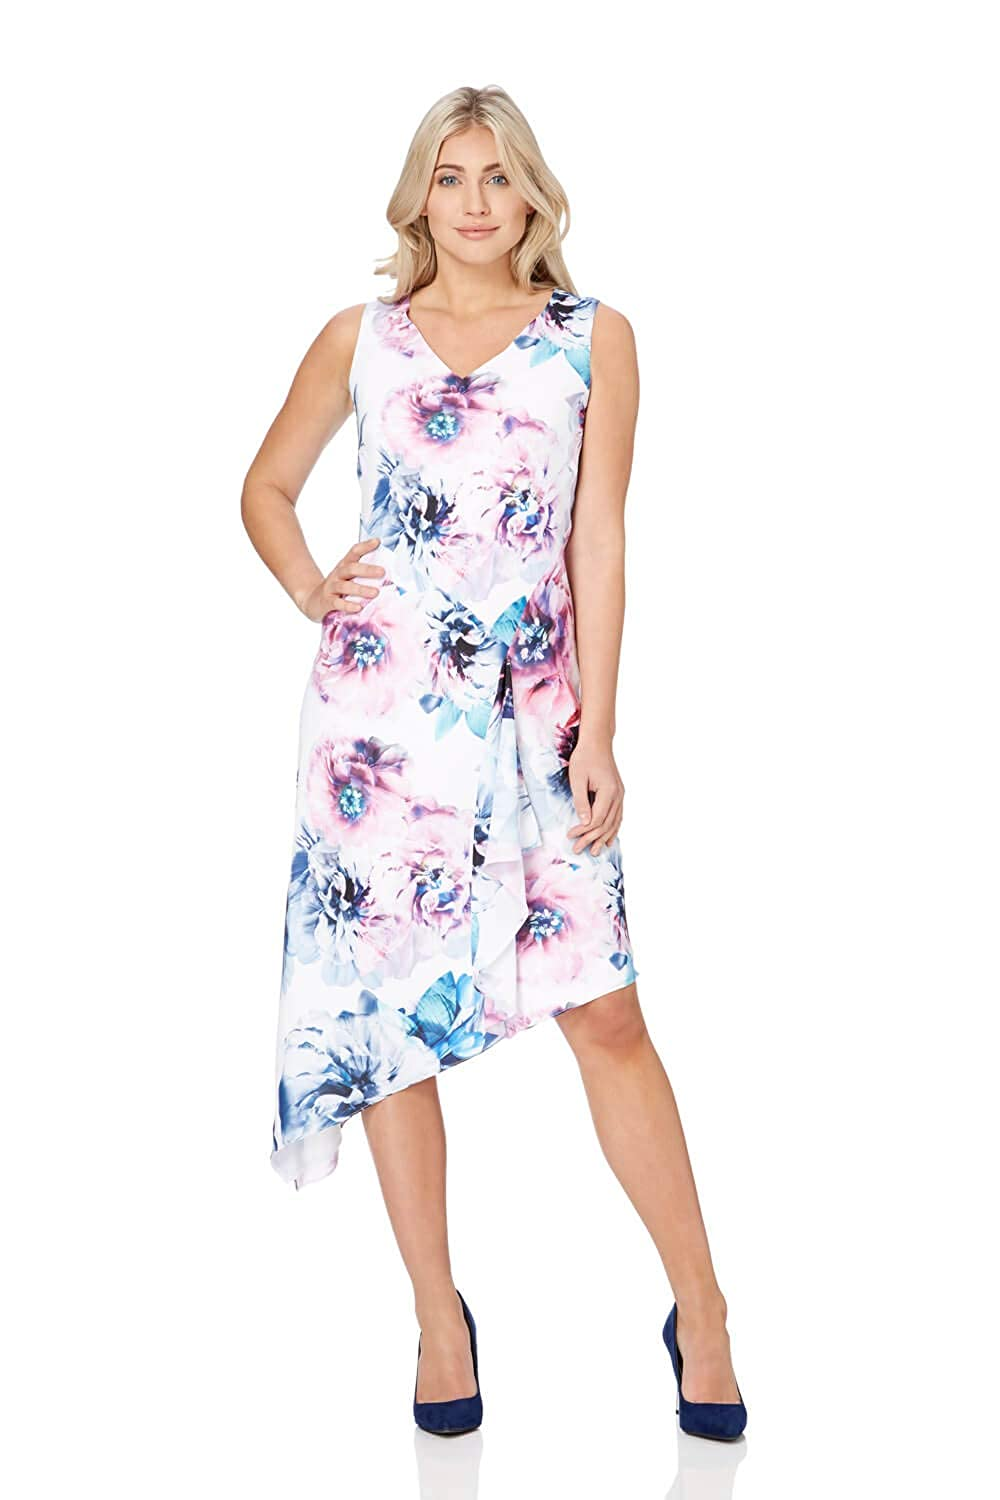 87cd636ac9 Roman Originals Women Floral Print Asymmetric Dress - Ladies V-Neckline  Sleeveless Midi Length Going Out Occasion Flowers Pretty  Amazon.co.uk   Clothing